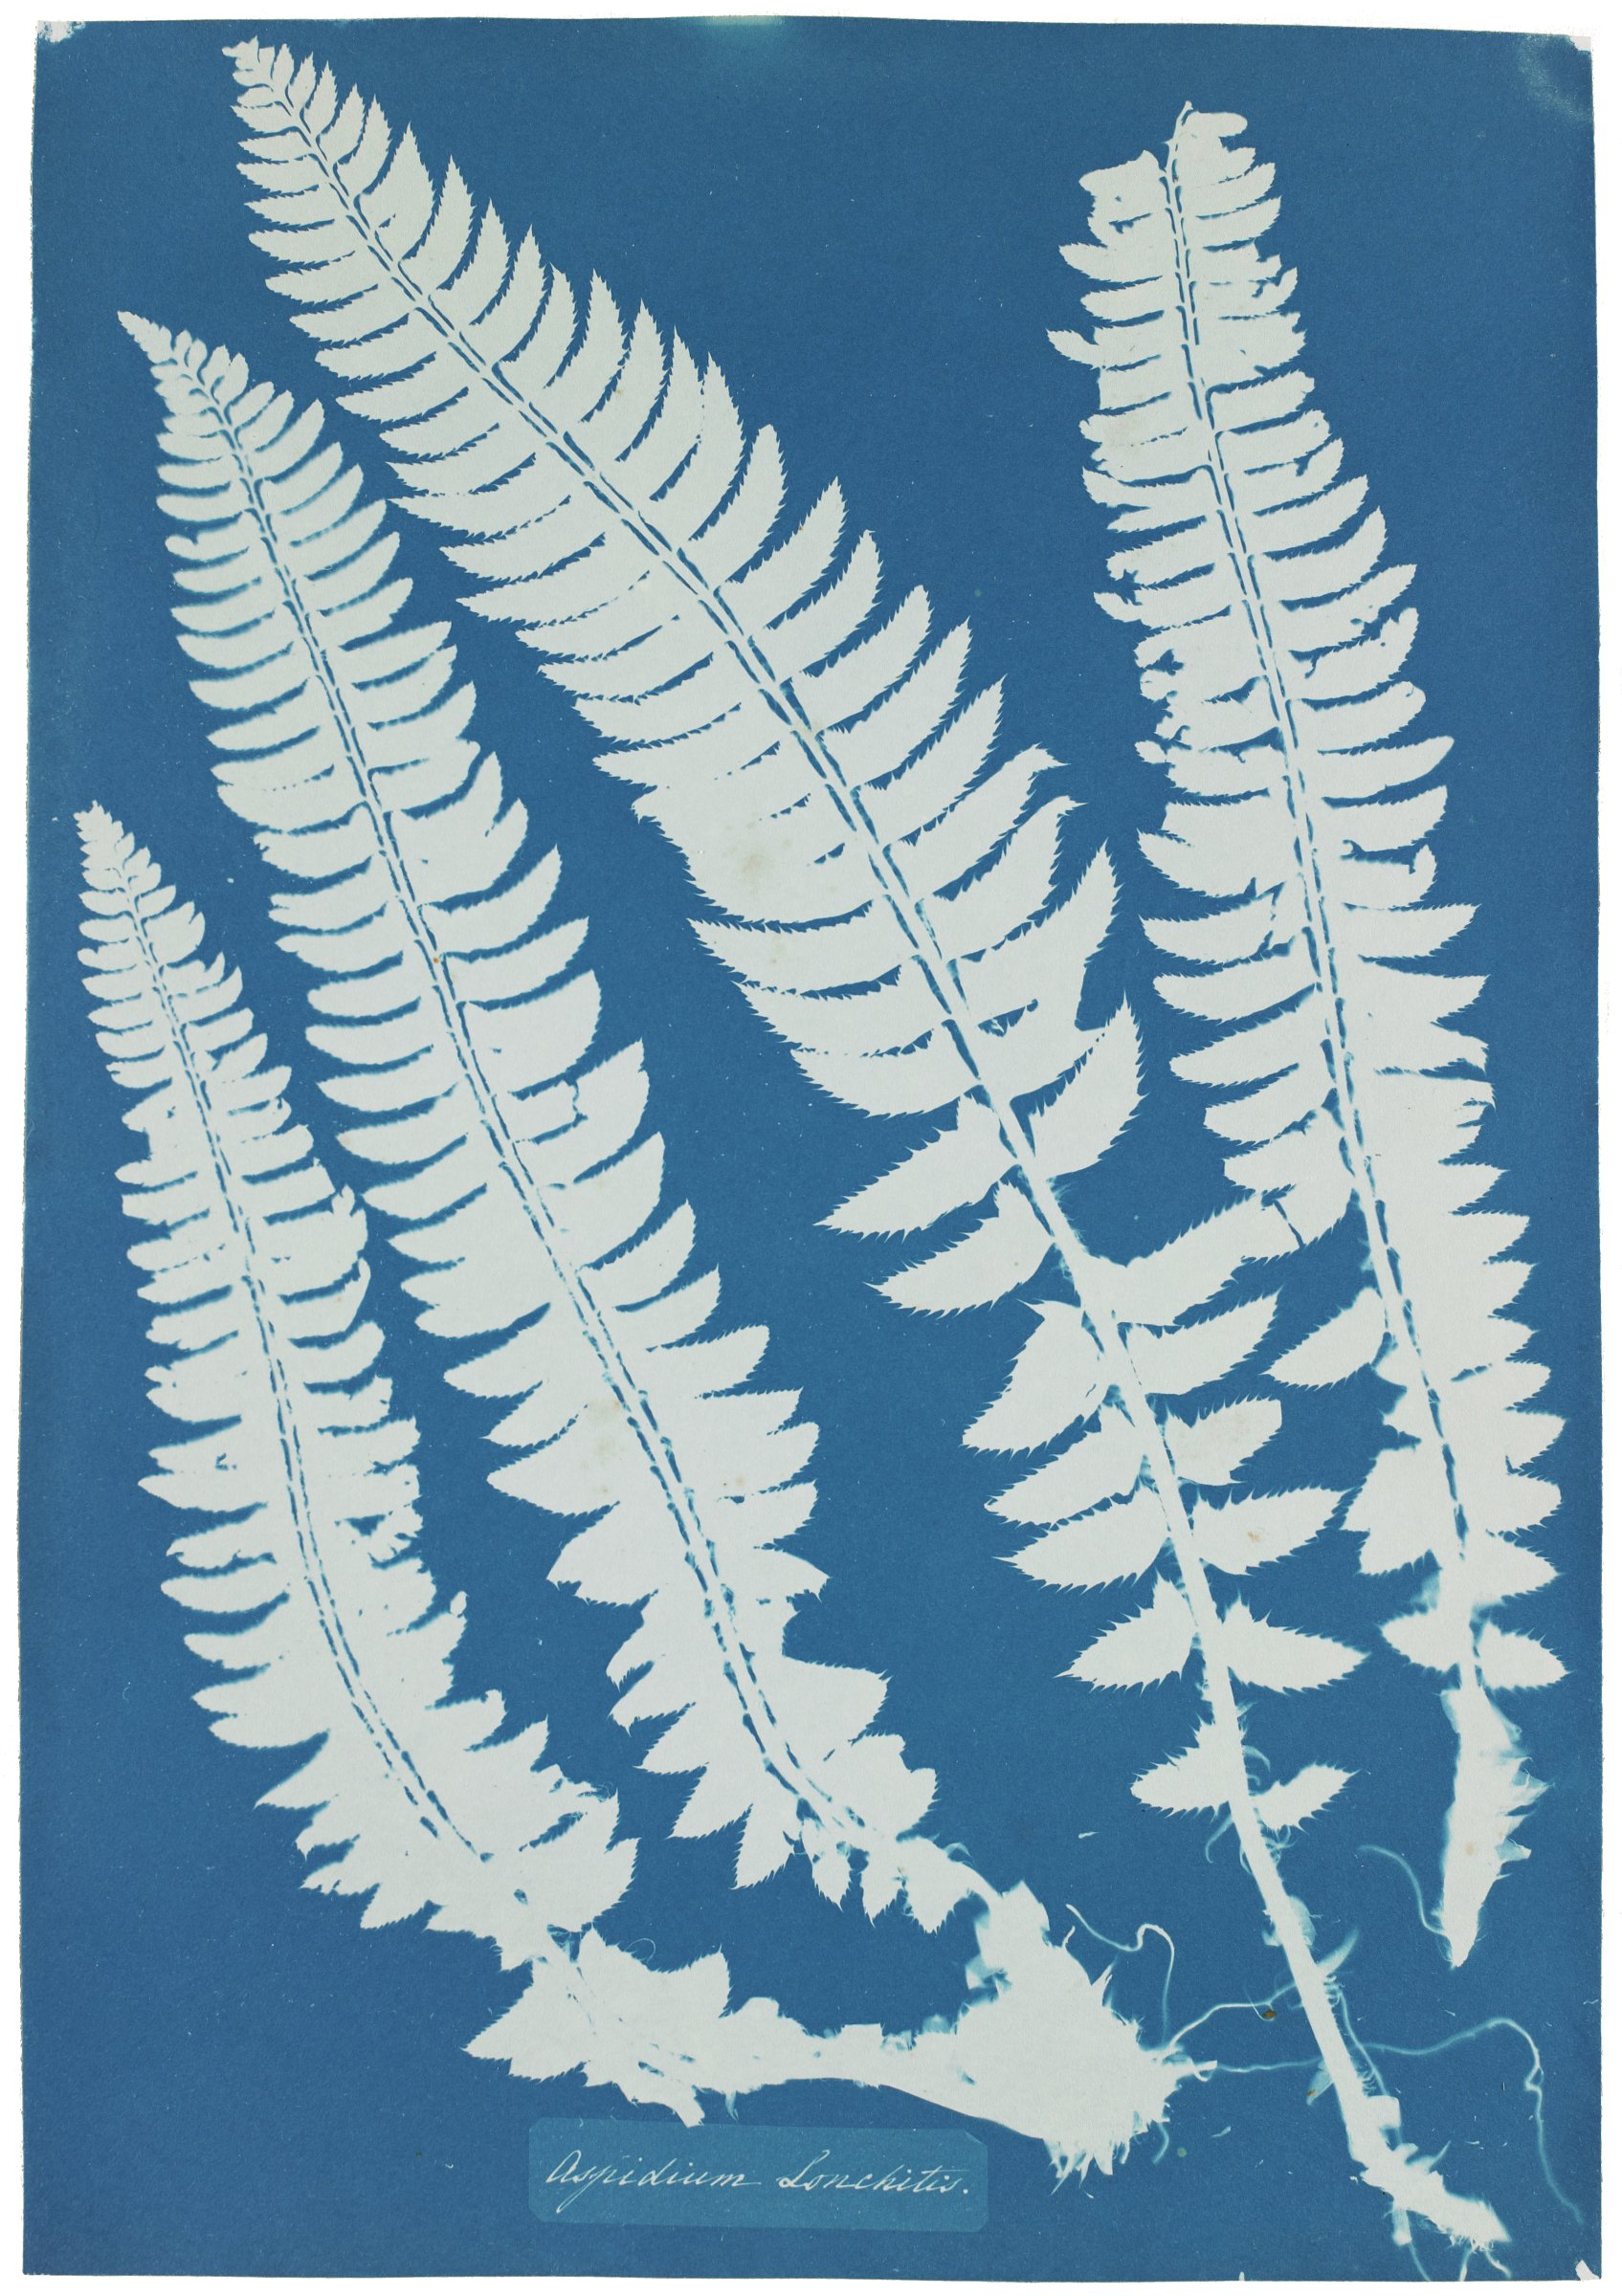 Aspidium Lonchitis, from Cyanotypes of British and Foreign Flowering Plants and Ferns, Anna Atkins, cyanotype